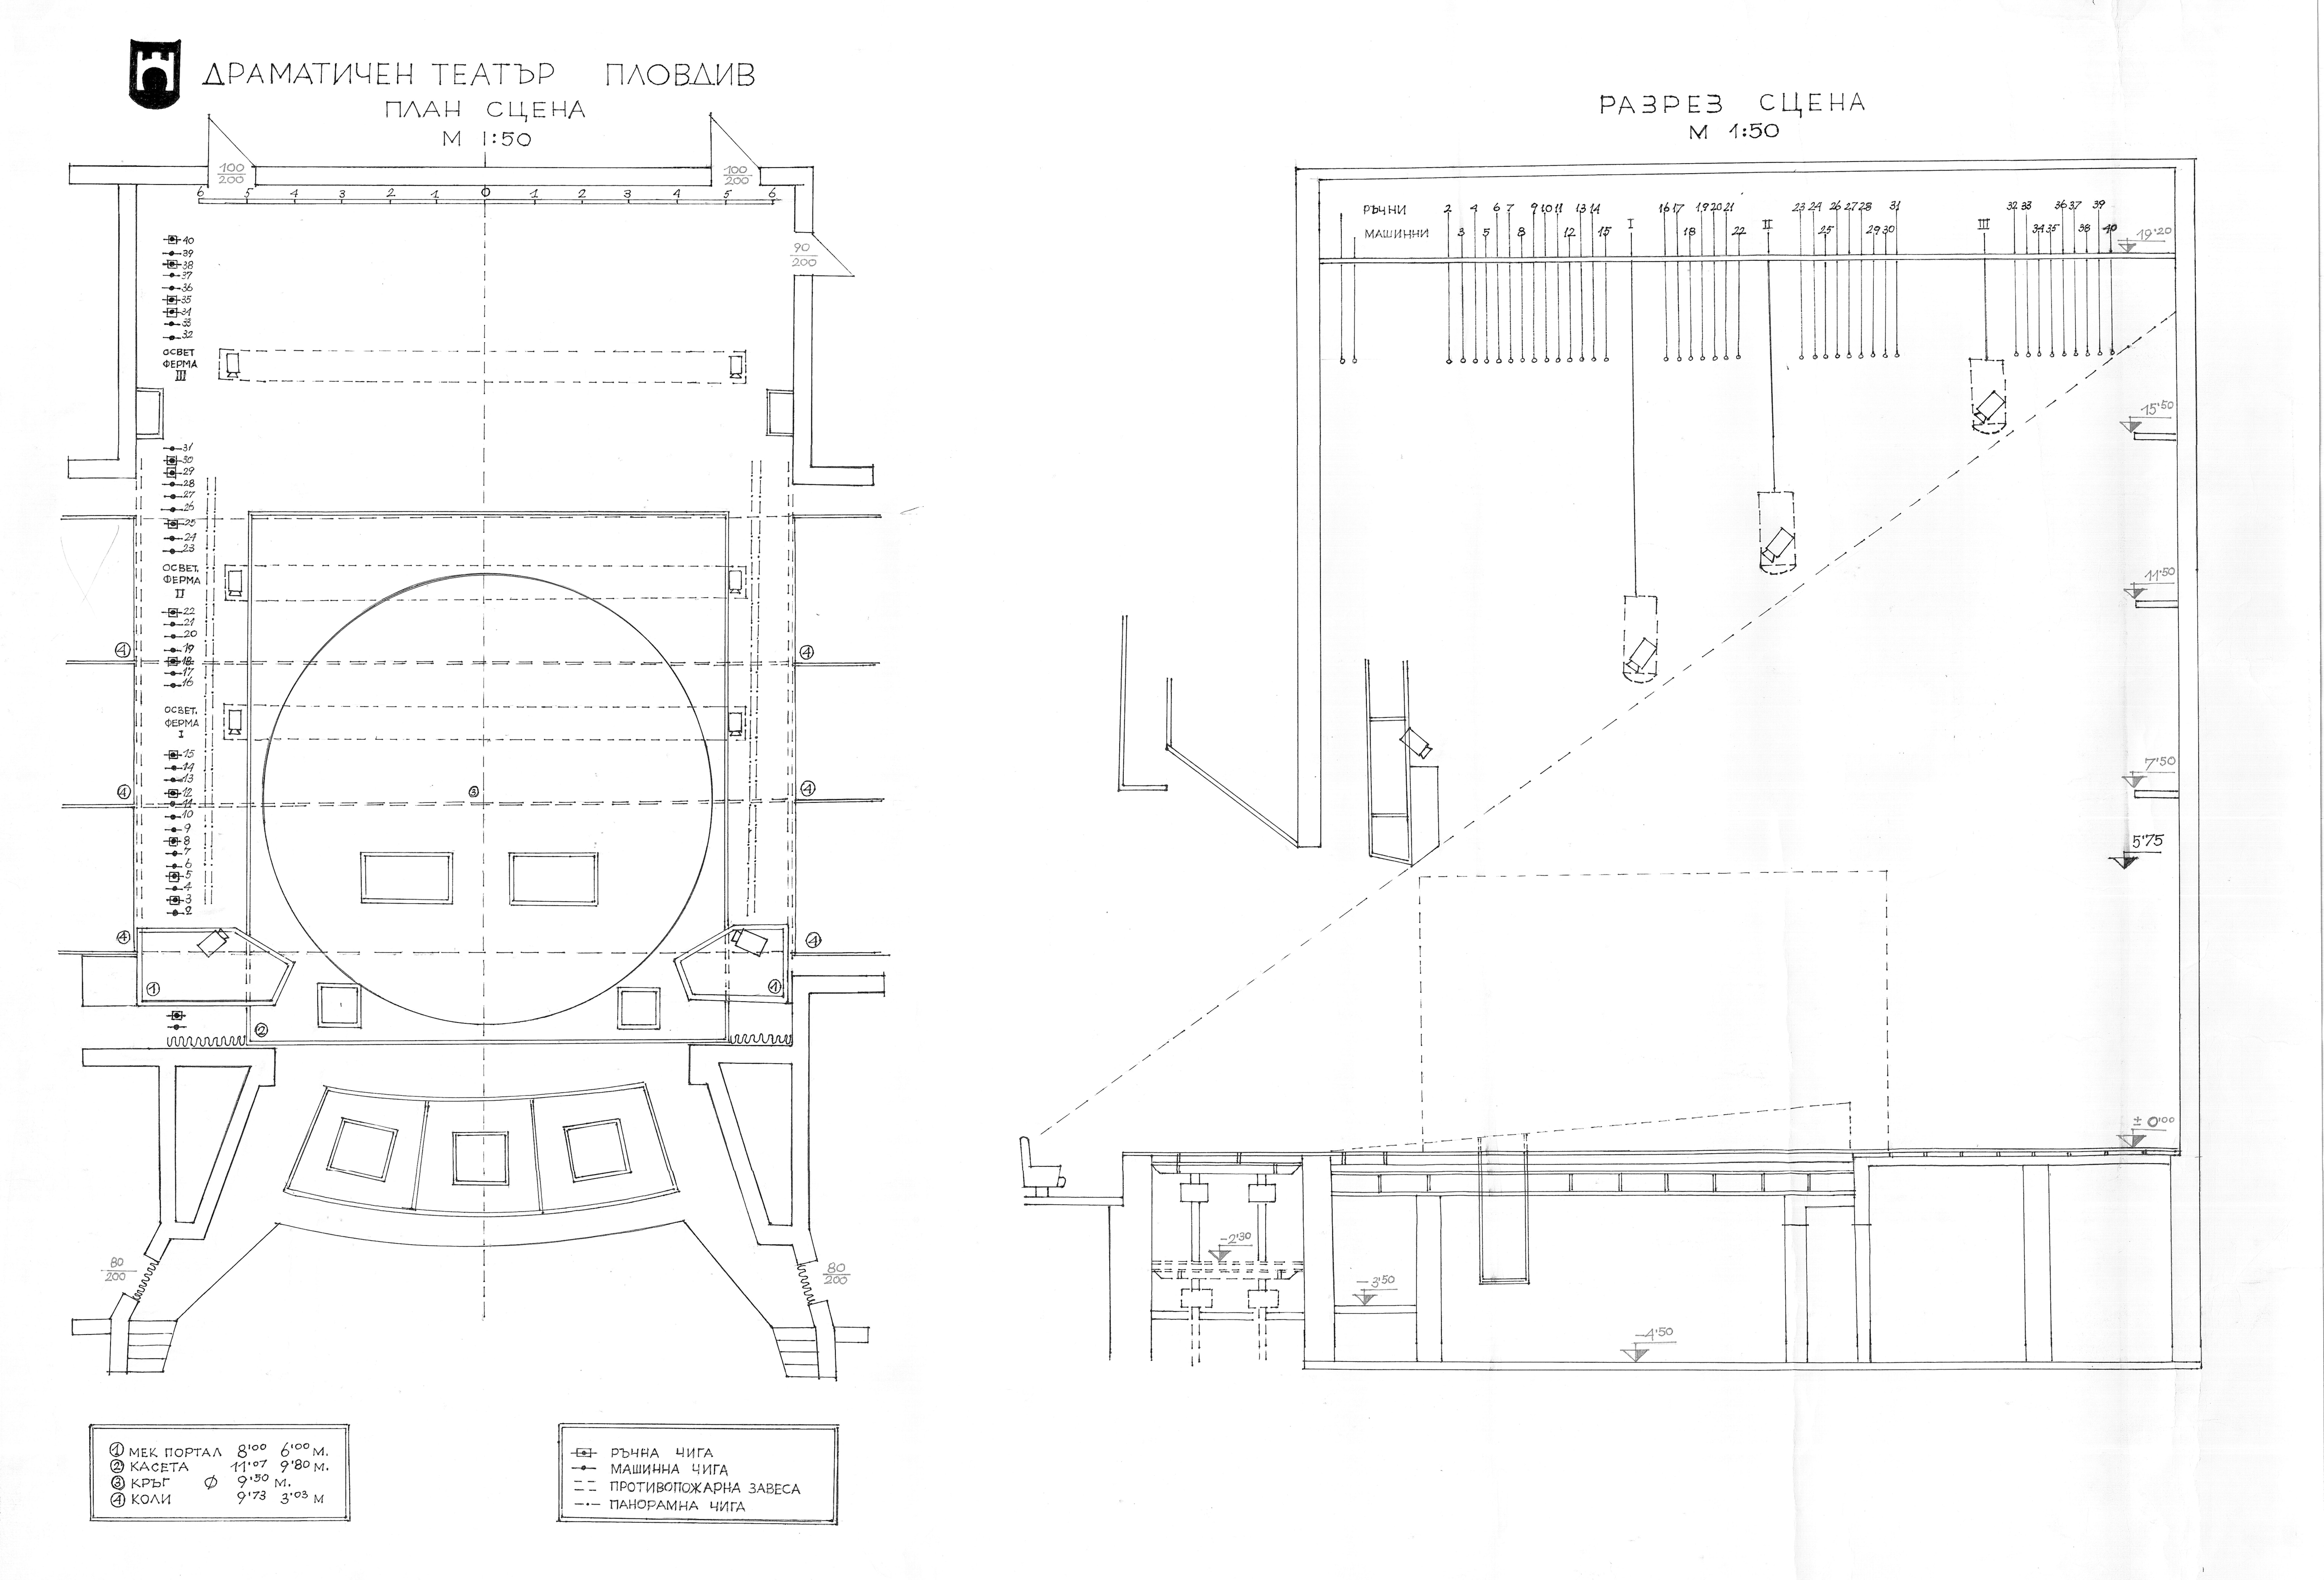 Main Stage Plovdiv Drama Theater Theatre Lighting Diagram Floor Plan